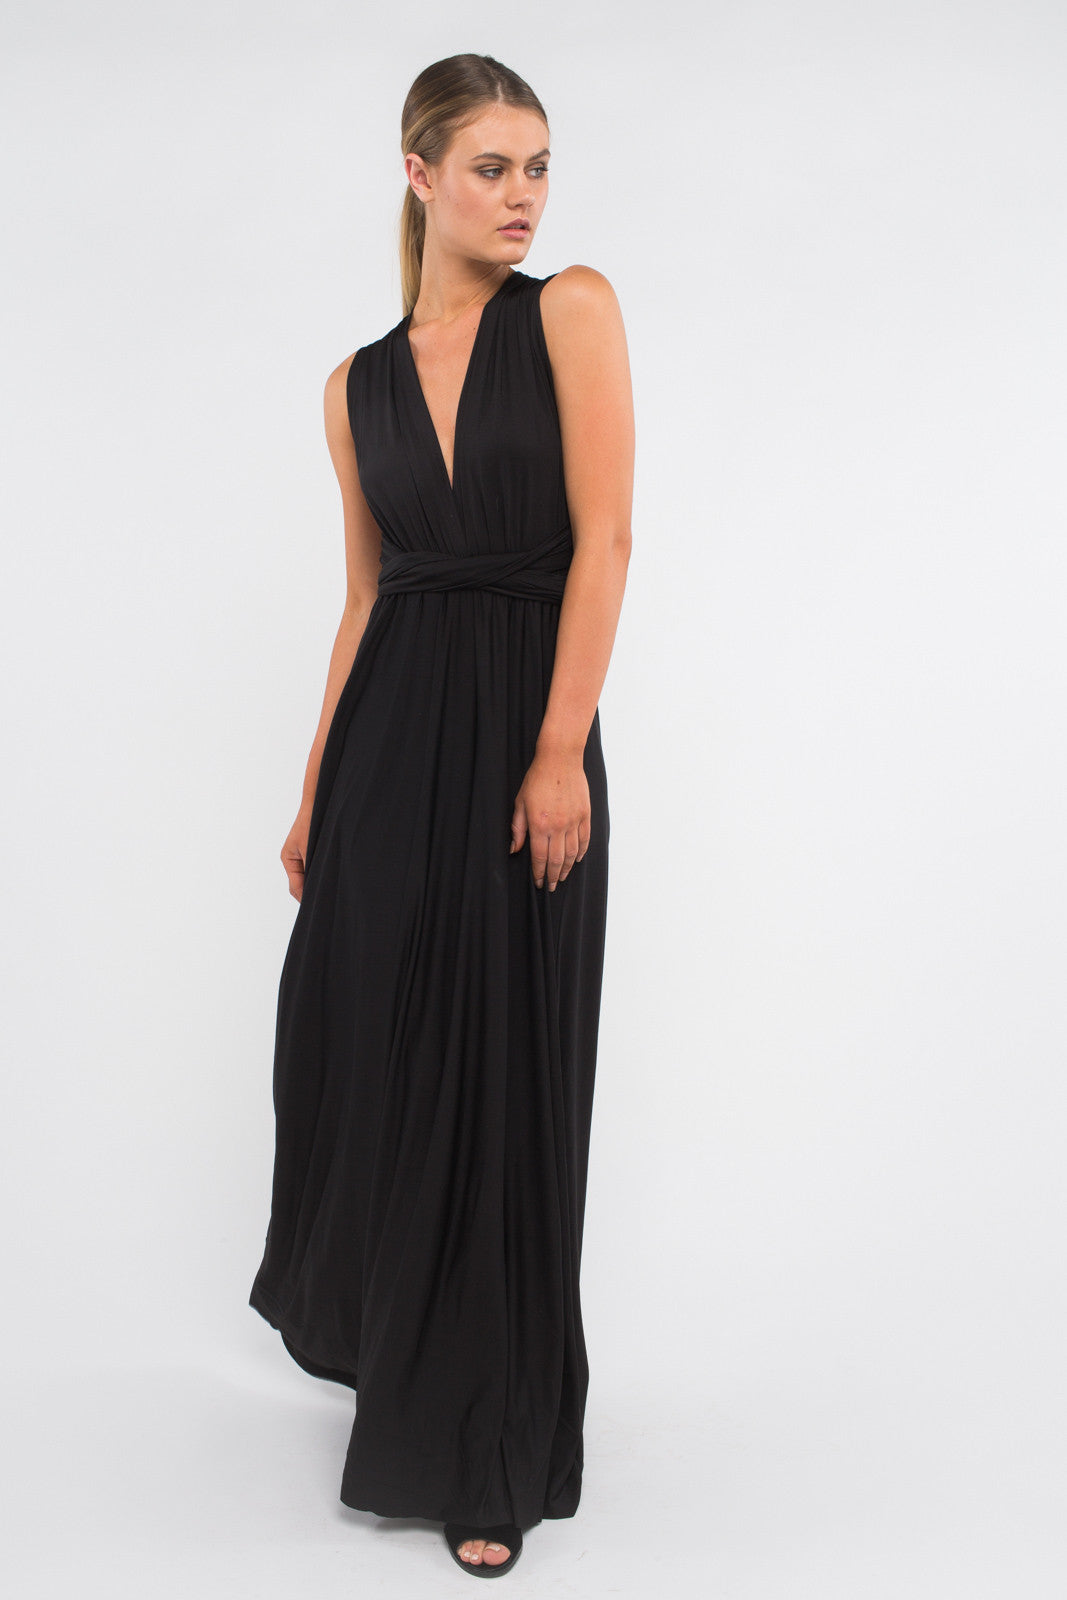 Make it your way Maxi Black